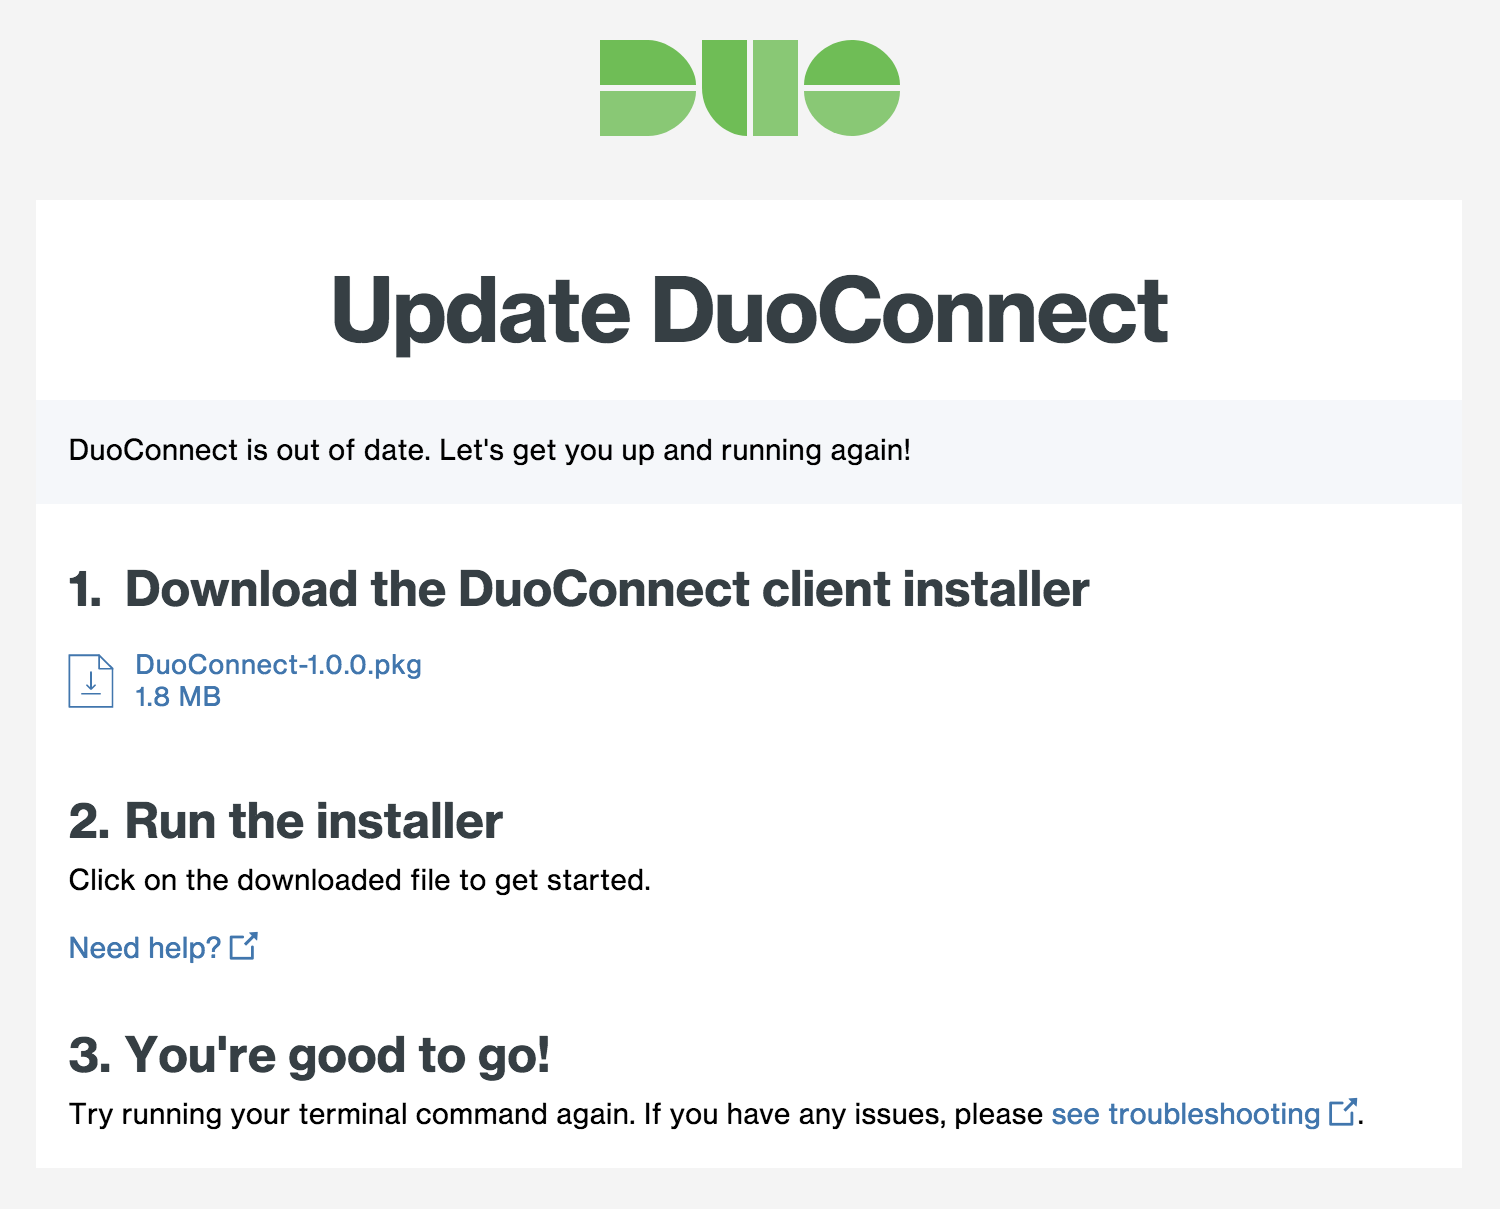 DuoConnect - Guide to Two-Factor Authentication · Duo Security